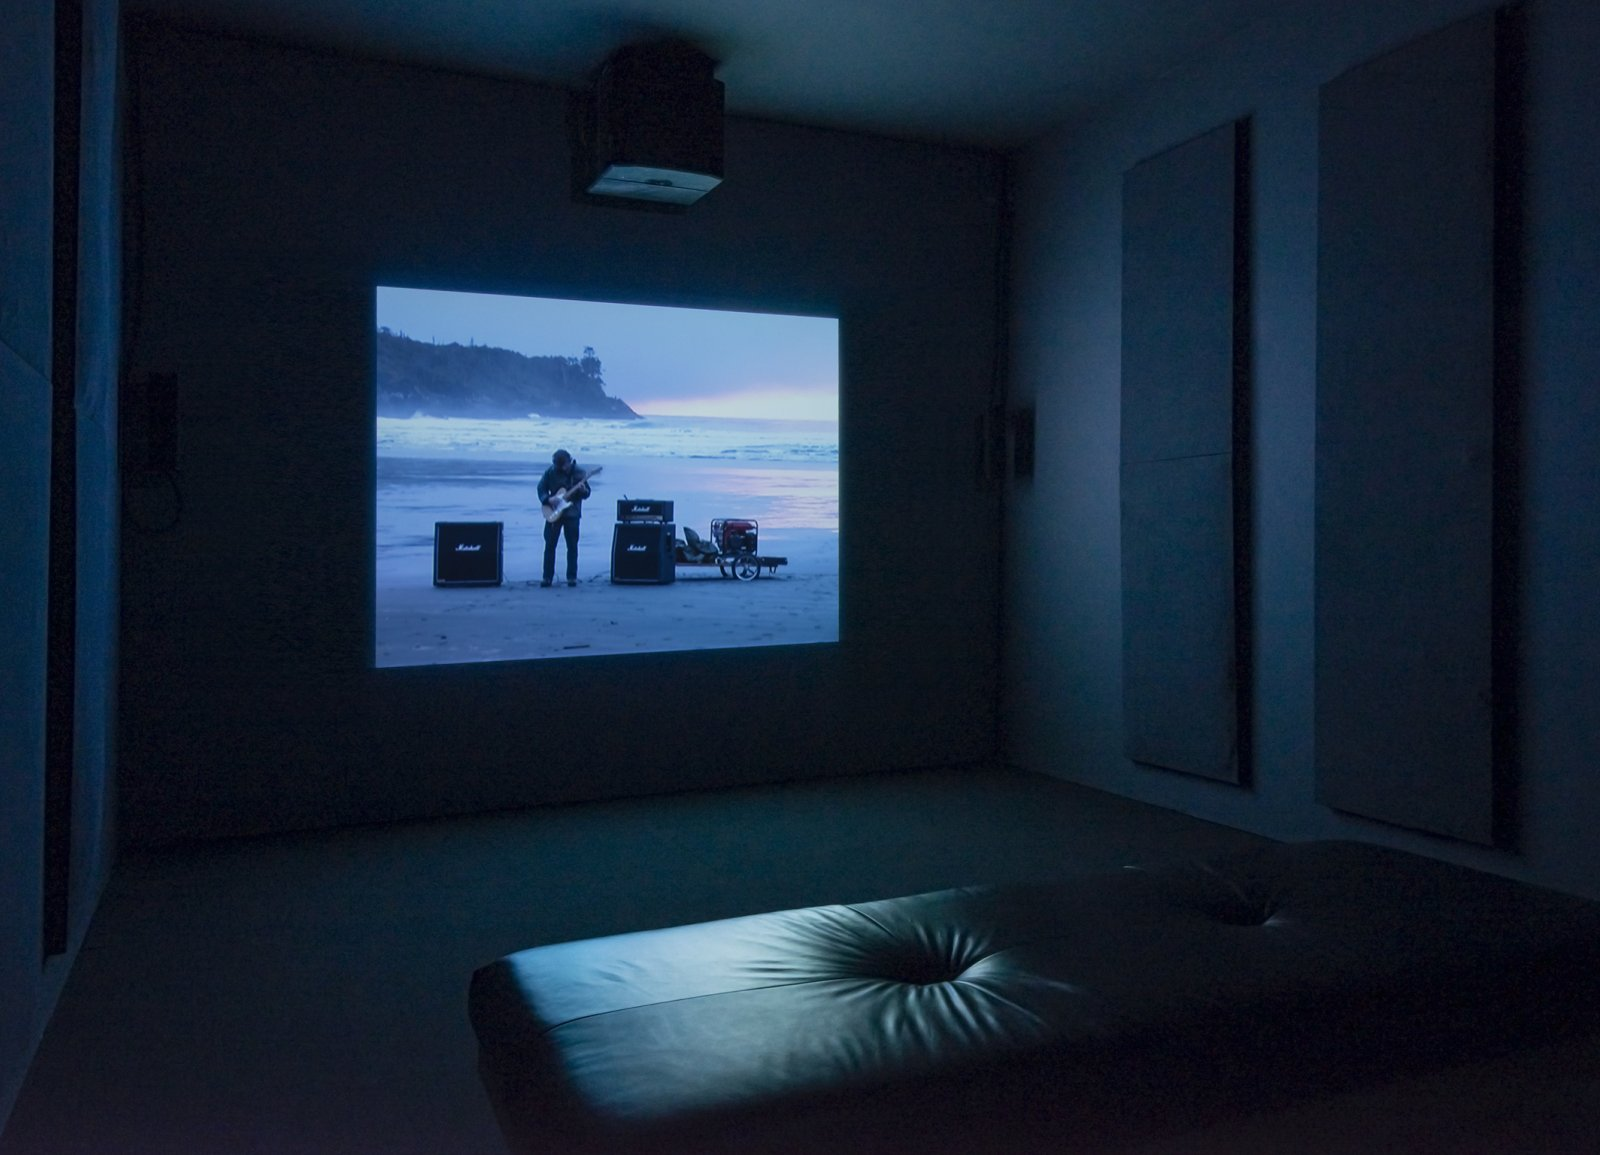 Kevin Schmidt, Long Beach Led Zep, 2002, single channel video from DVD, 9 minutes, 12 seconds looped. Installation view, The Commons, Kamloops Art Gallery, Kamloops, Canada, 2015